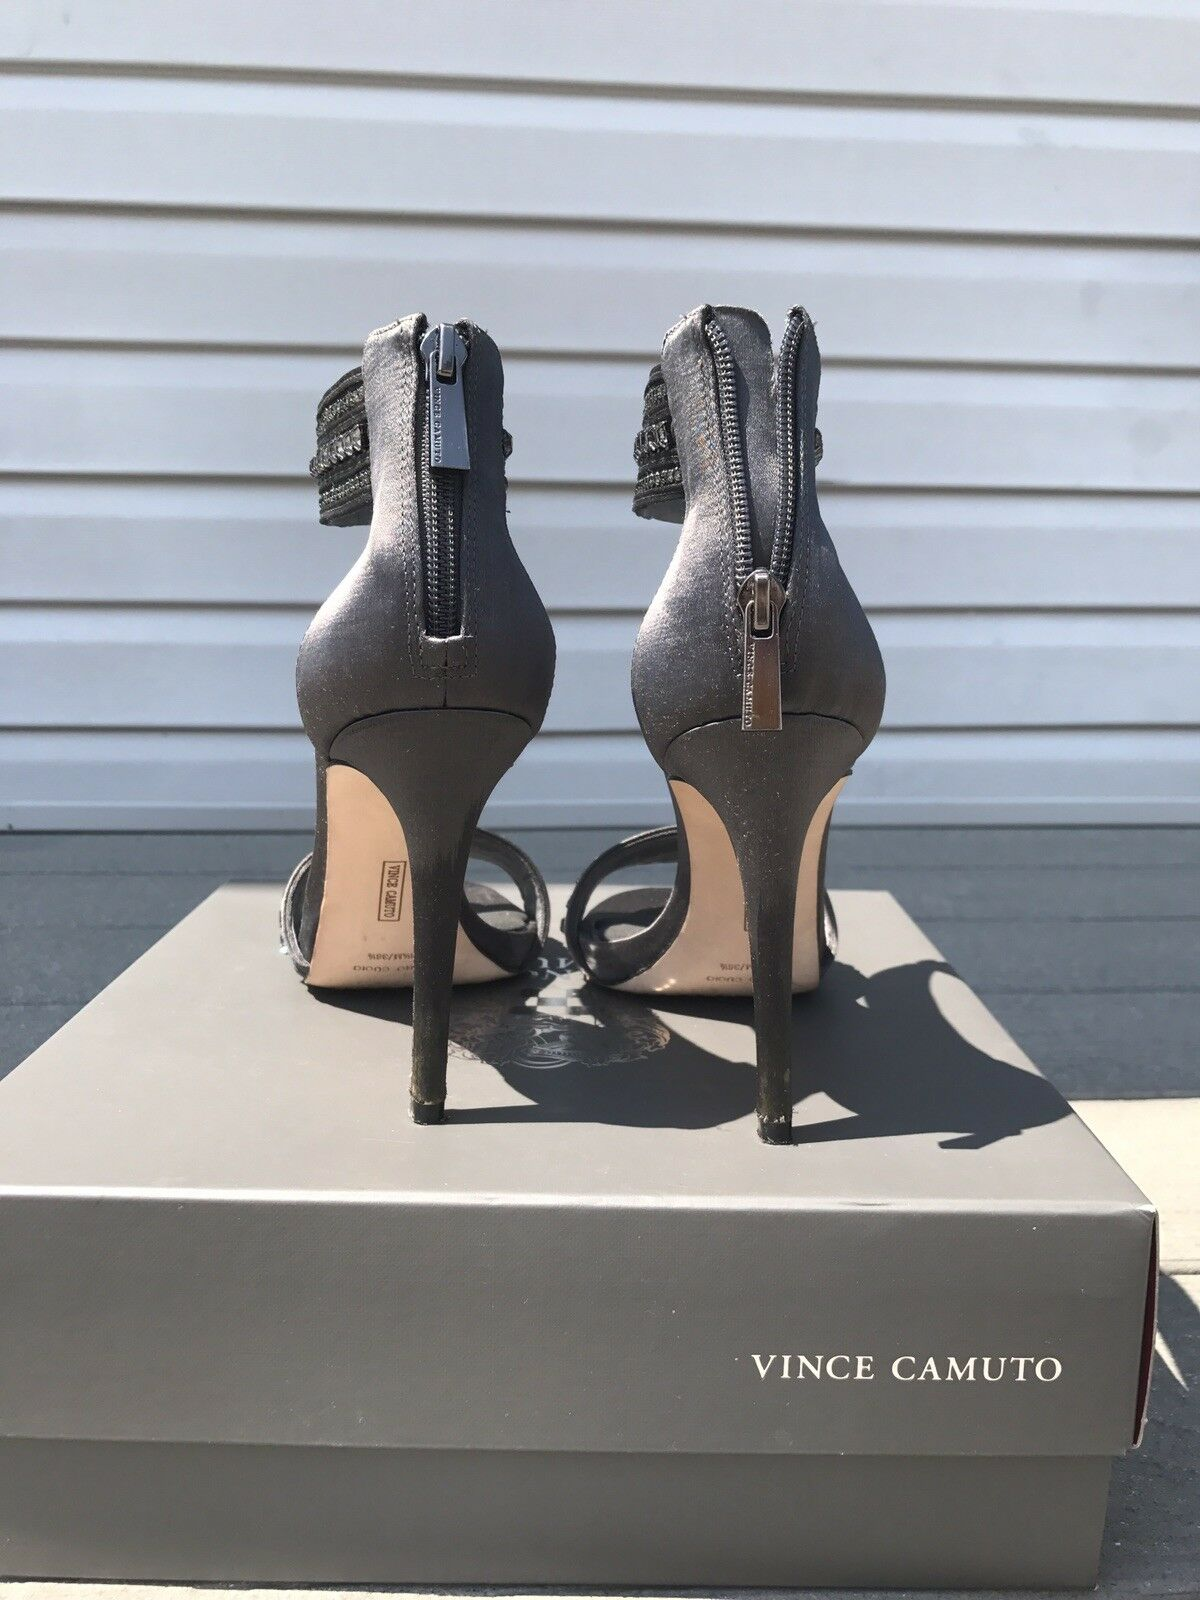 Vince Camuto Fairlee Jeweled Satin Sandale Größe 6.5